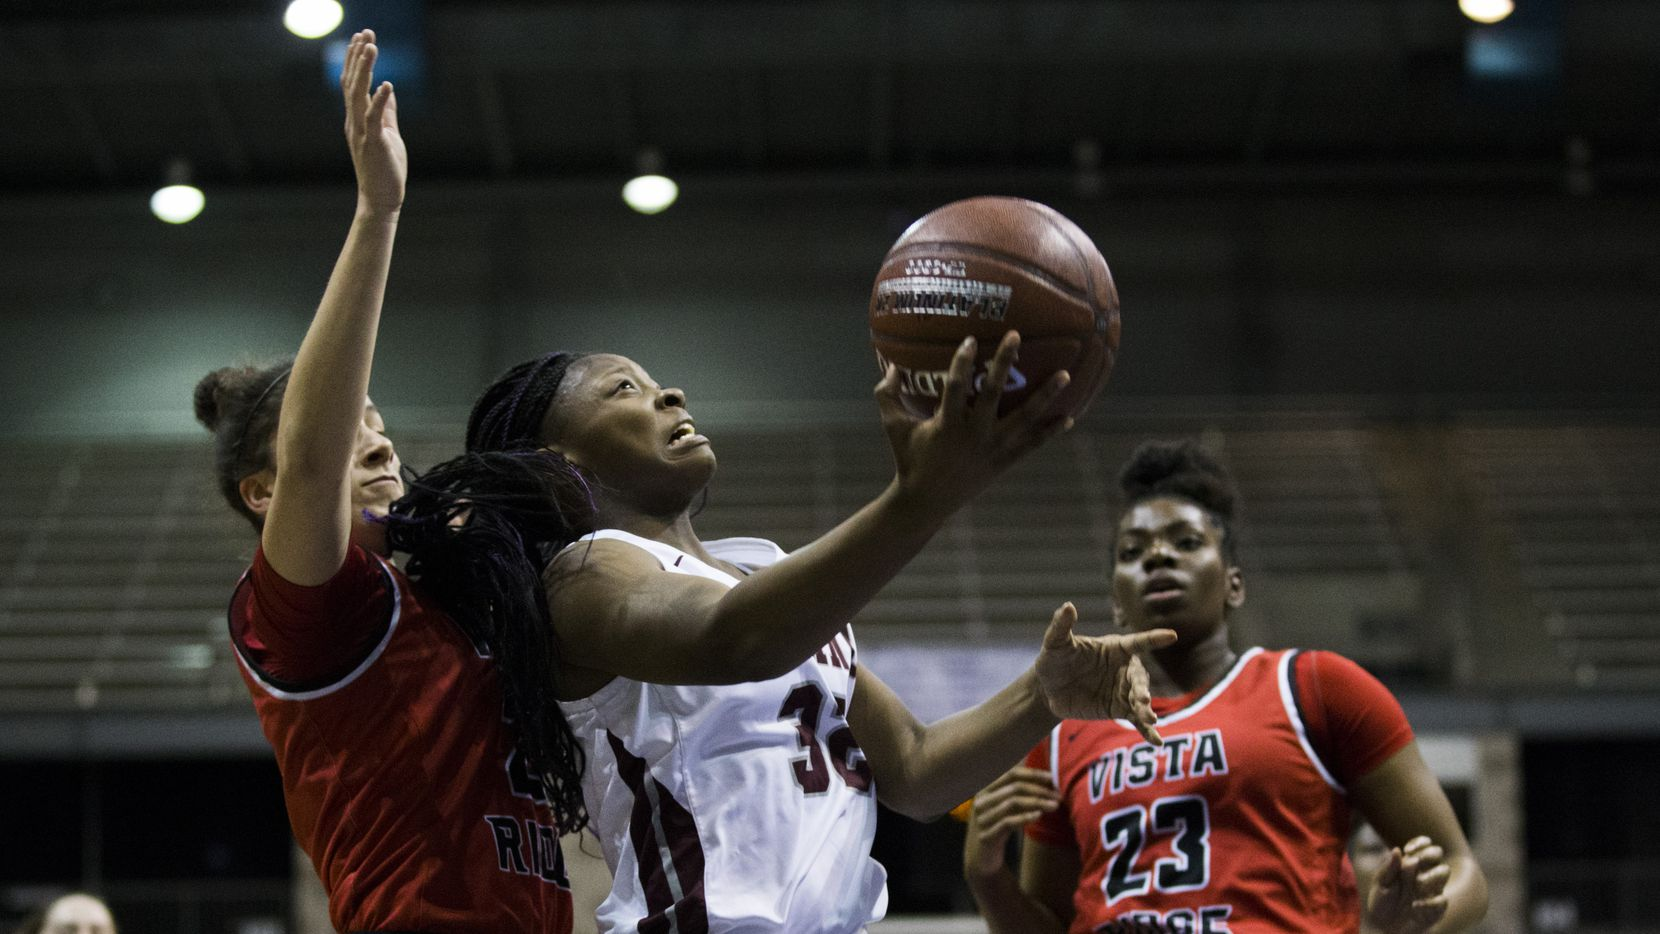 Plano guard Sanaa Murphy-Showers (32) goes up for a shot during the first quarter of a UIL 6A Region II semifinal girls basketball game between Plano and Cedar Park Vista Ridge on Friday, February 28, 2020 at Ellis Davis Field House in Dallas.